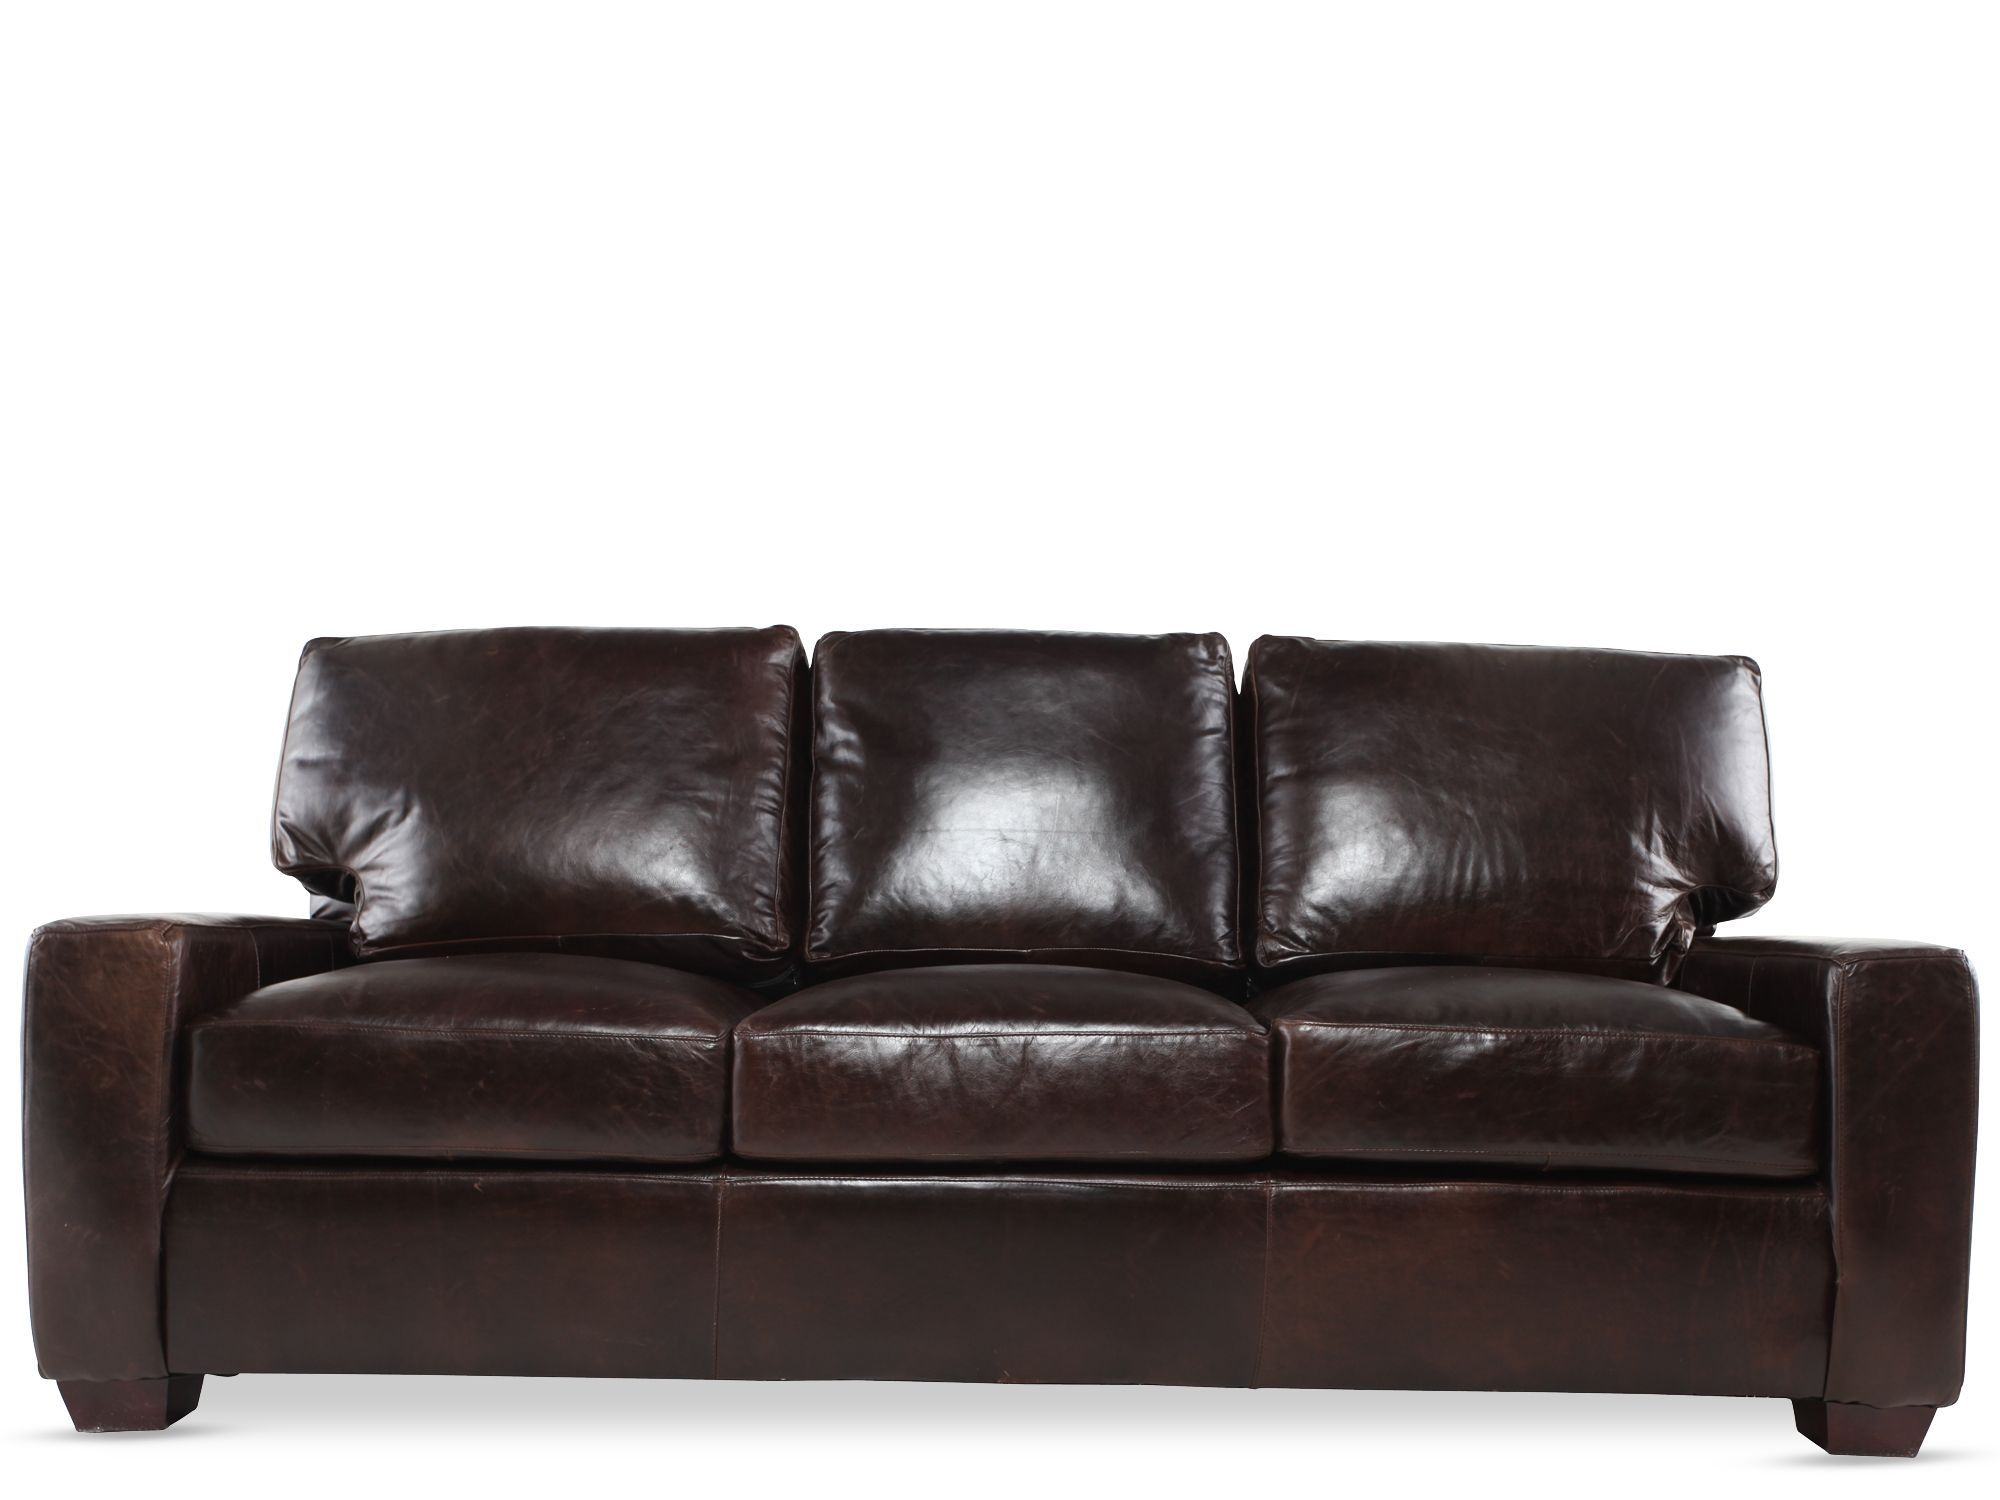 Best Quality Leather Sofa | Leather Sofa | Leather sofa, Sofa ...